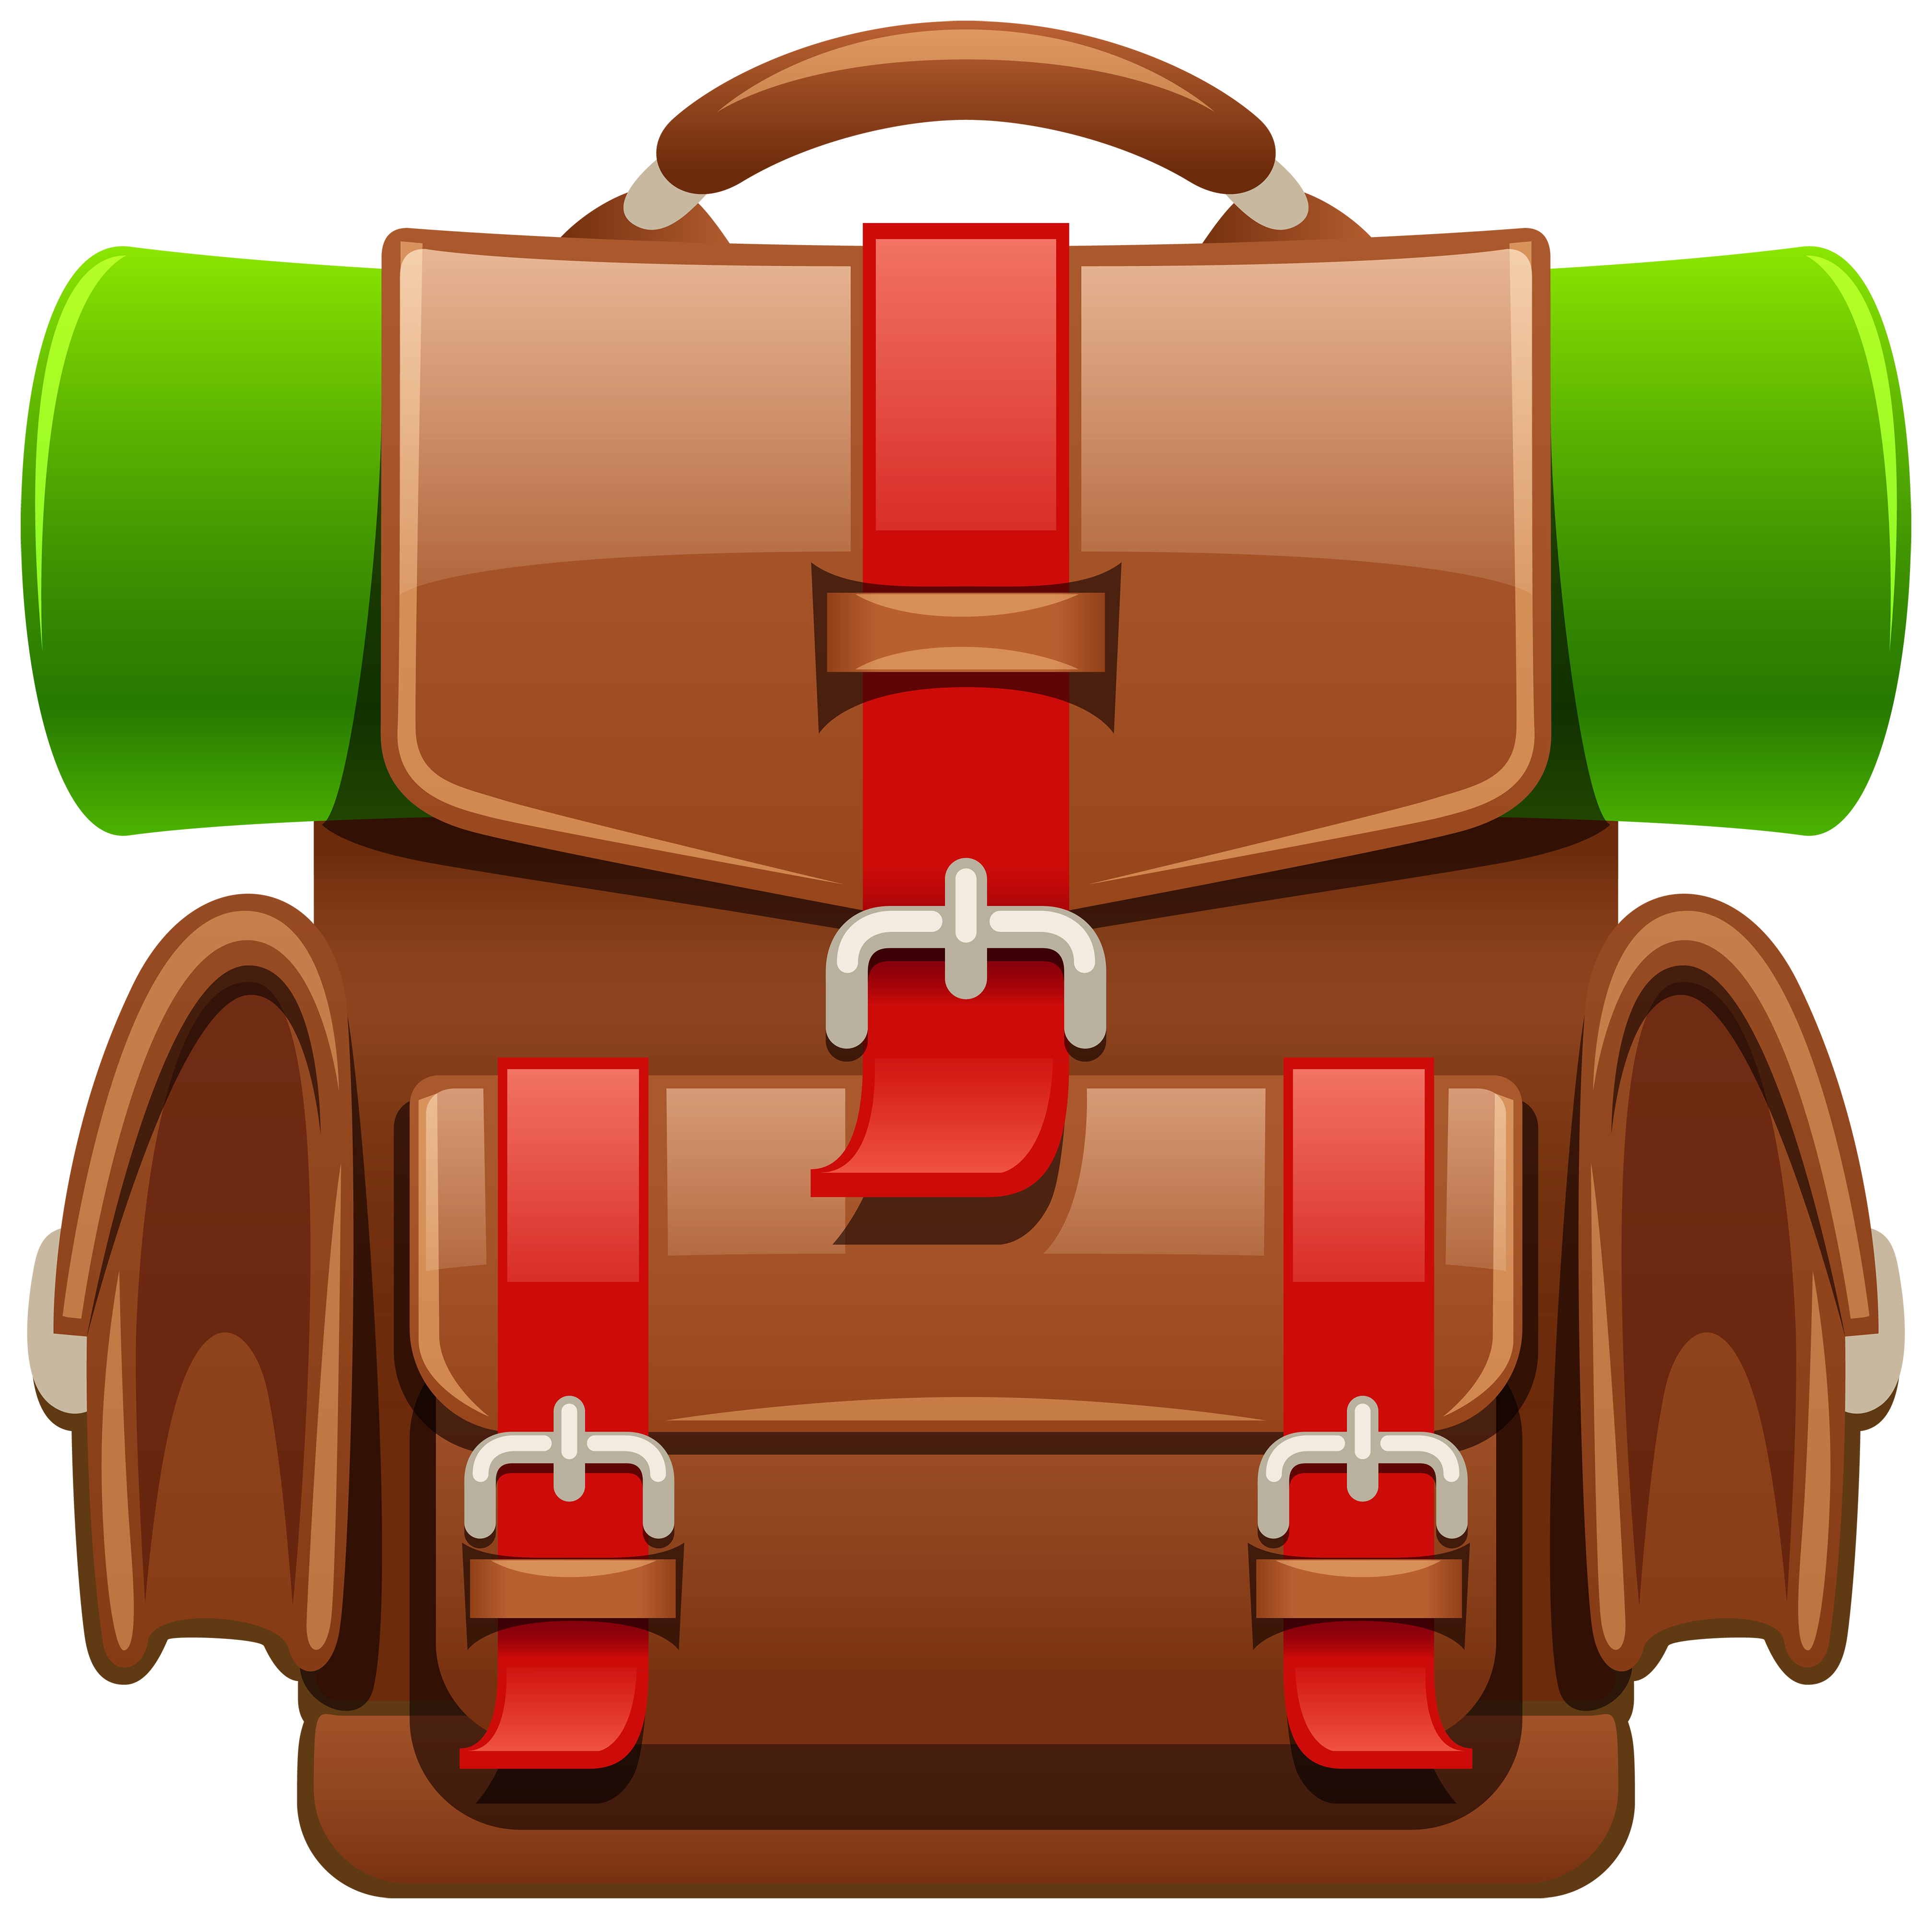 4028x4000 Free Backpack Clipart Clip Art Images 3